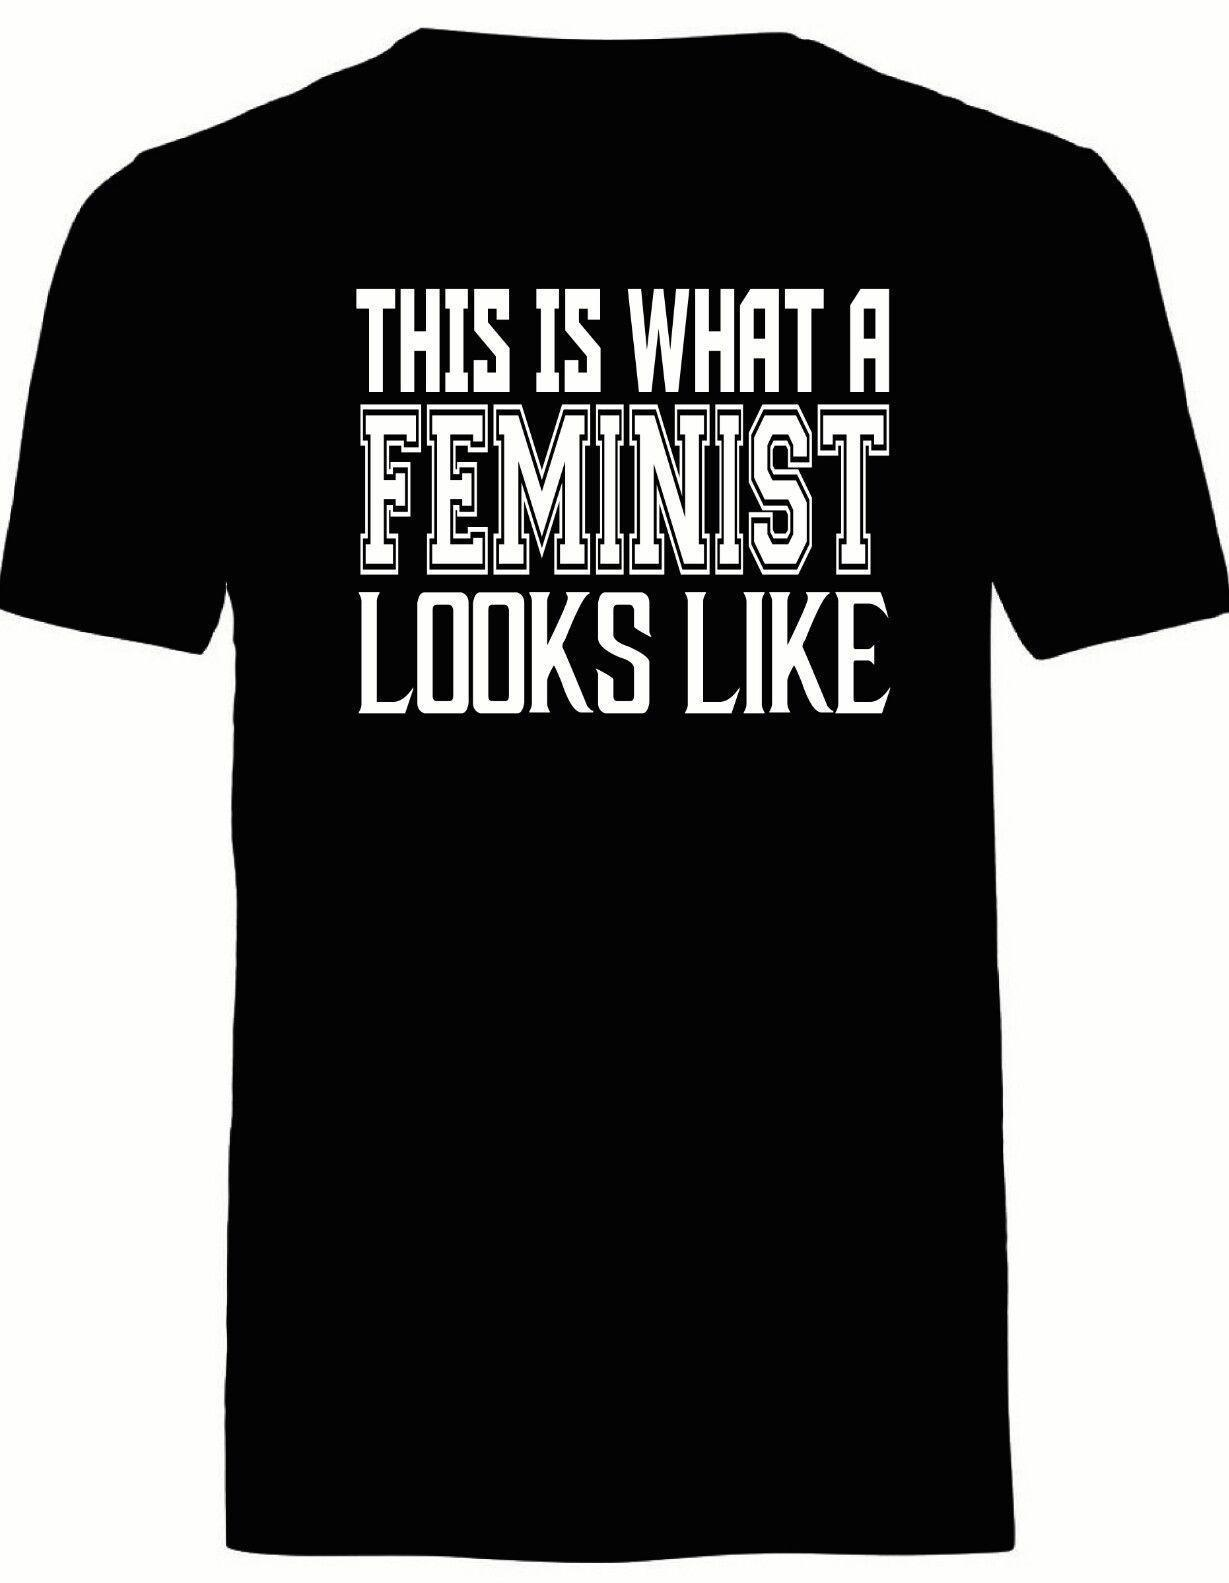 09177dd9 This Is What A Feminist Looks Like T Shirt Black Unisex Protest Girl Power  10 T Shirt Awesome T Shirts Online From Yubin07, $25.99  DHgate.Com